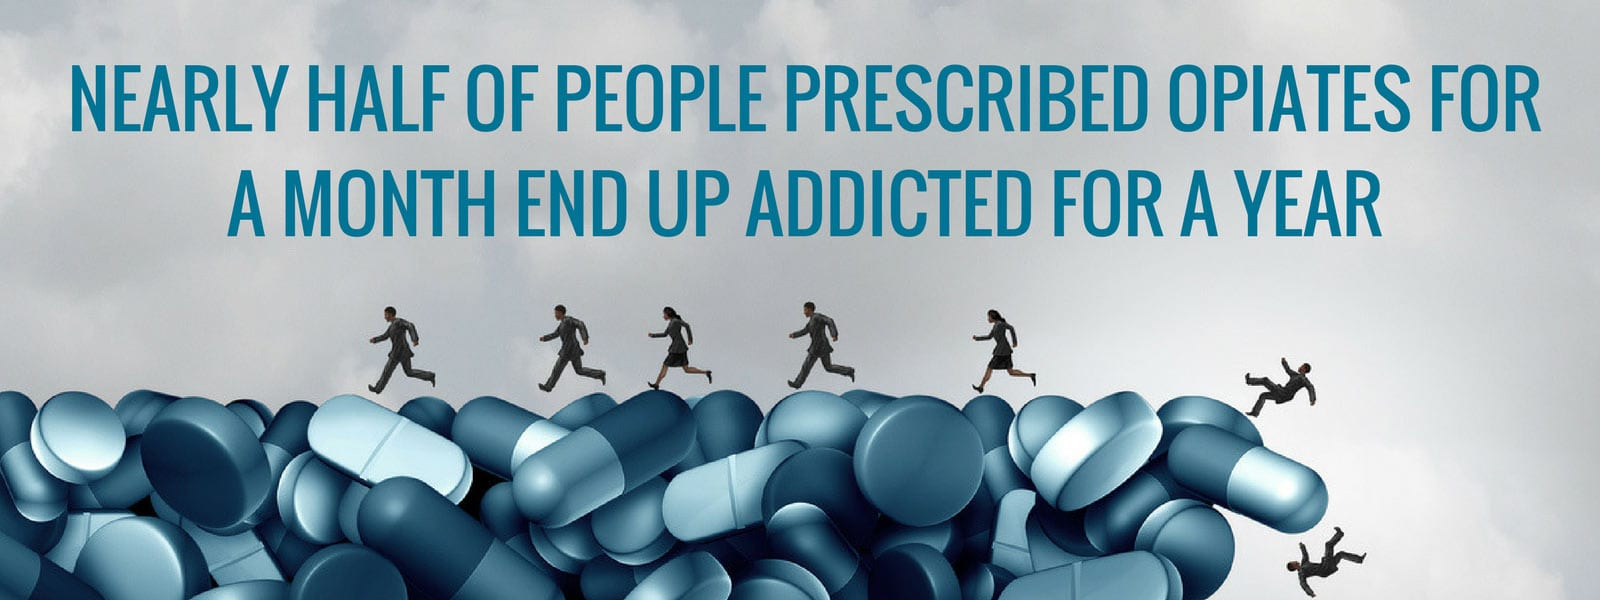 Opiate Addiction - Painkillers - Schick Shadel Hospital - drug rehab treatment center Seattle